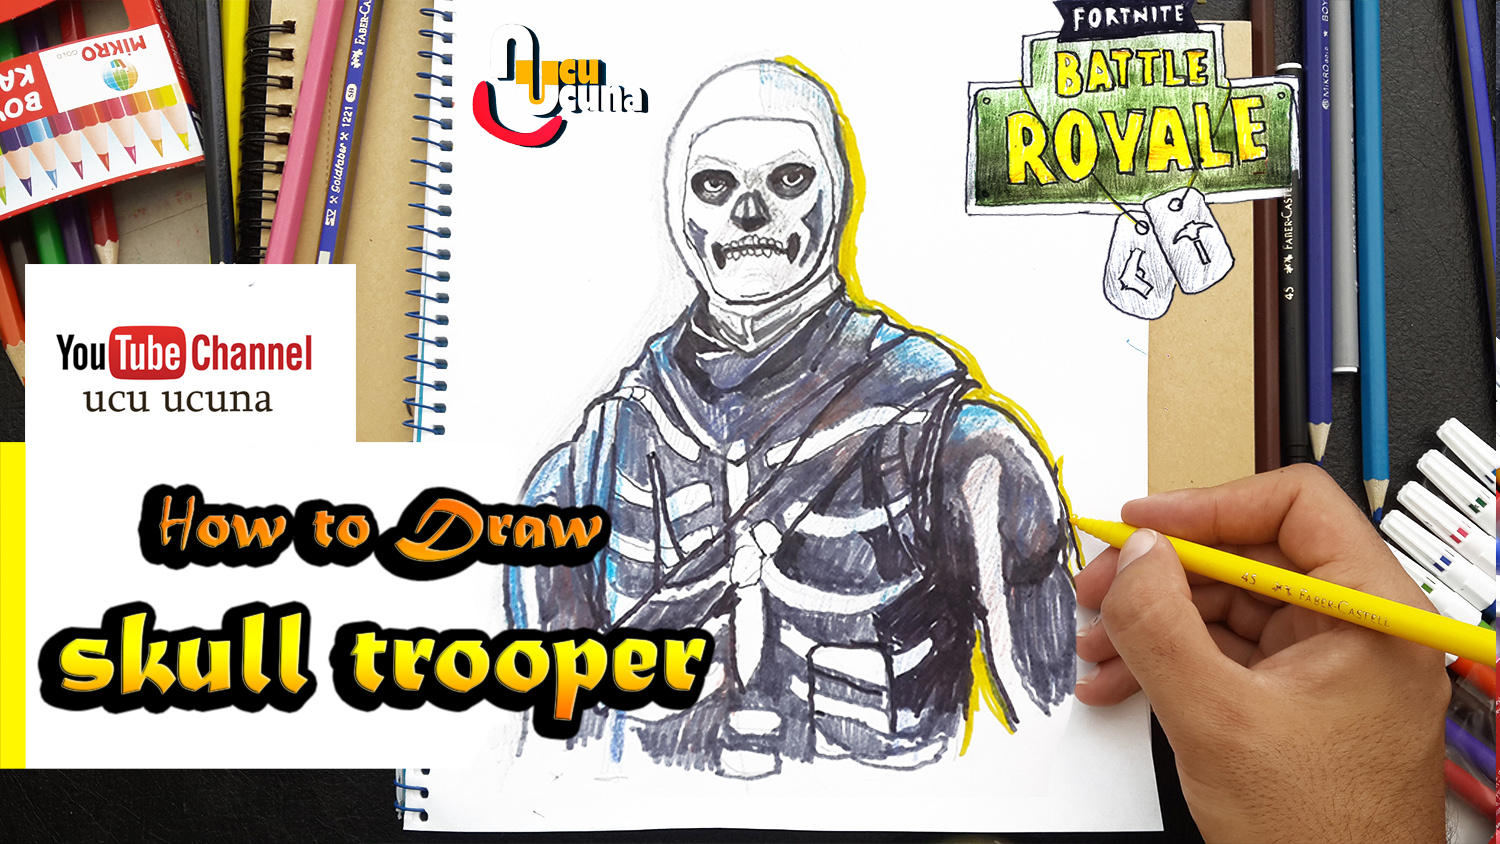 How to draw skulltrooper tutorial youtube channel name is ucu ucuna learn how to draw skull trooper from fortnite step by step beginner drawing tutorial of the skull trooper skin from fortnite